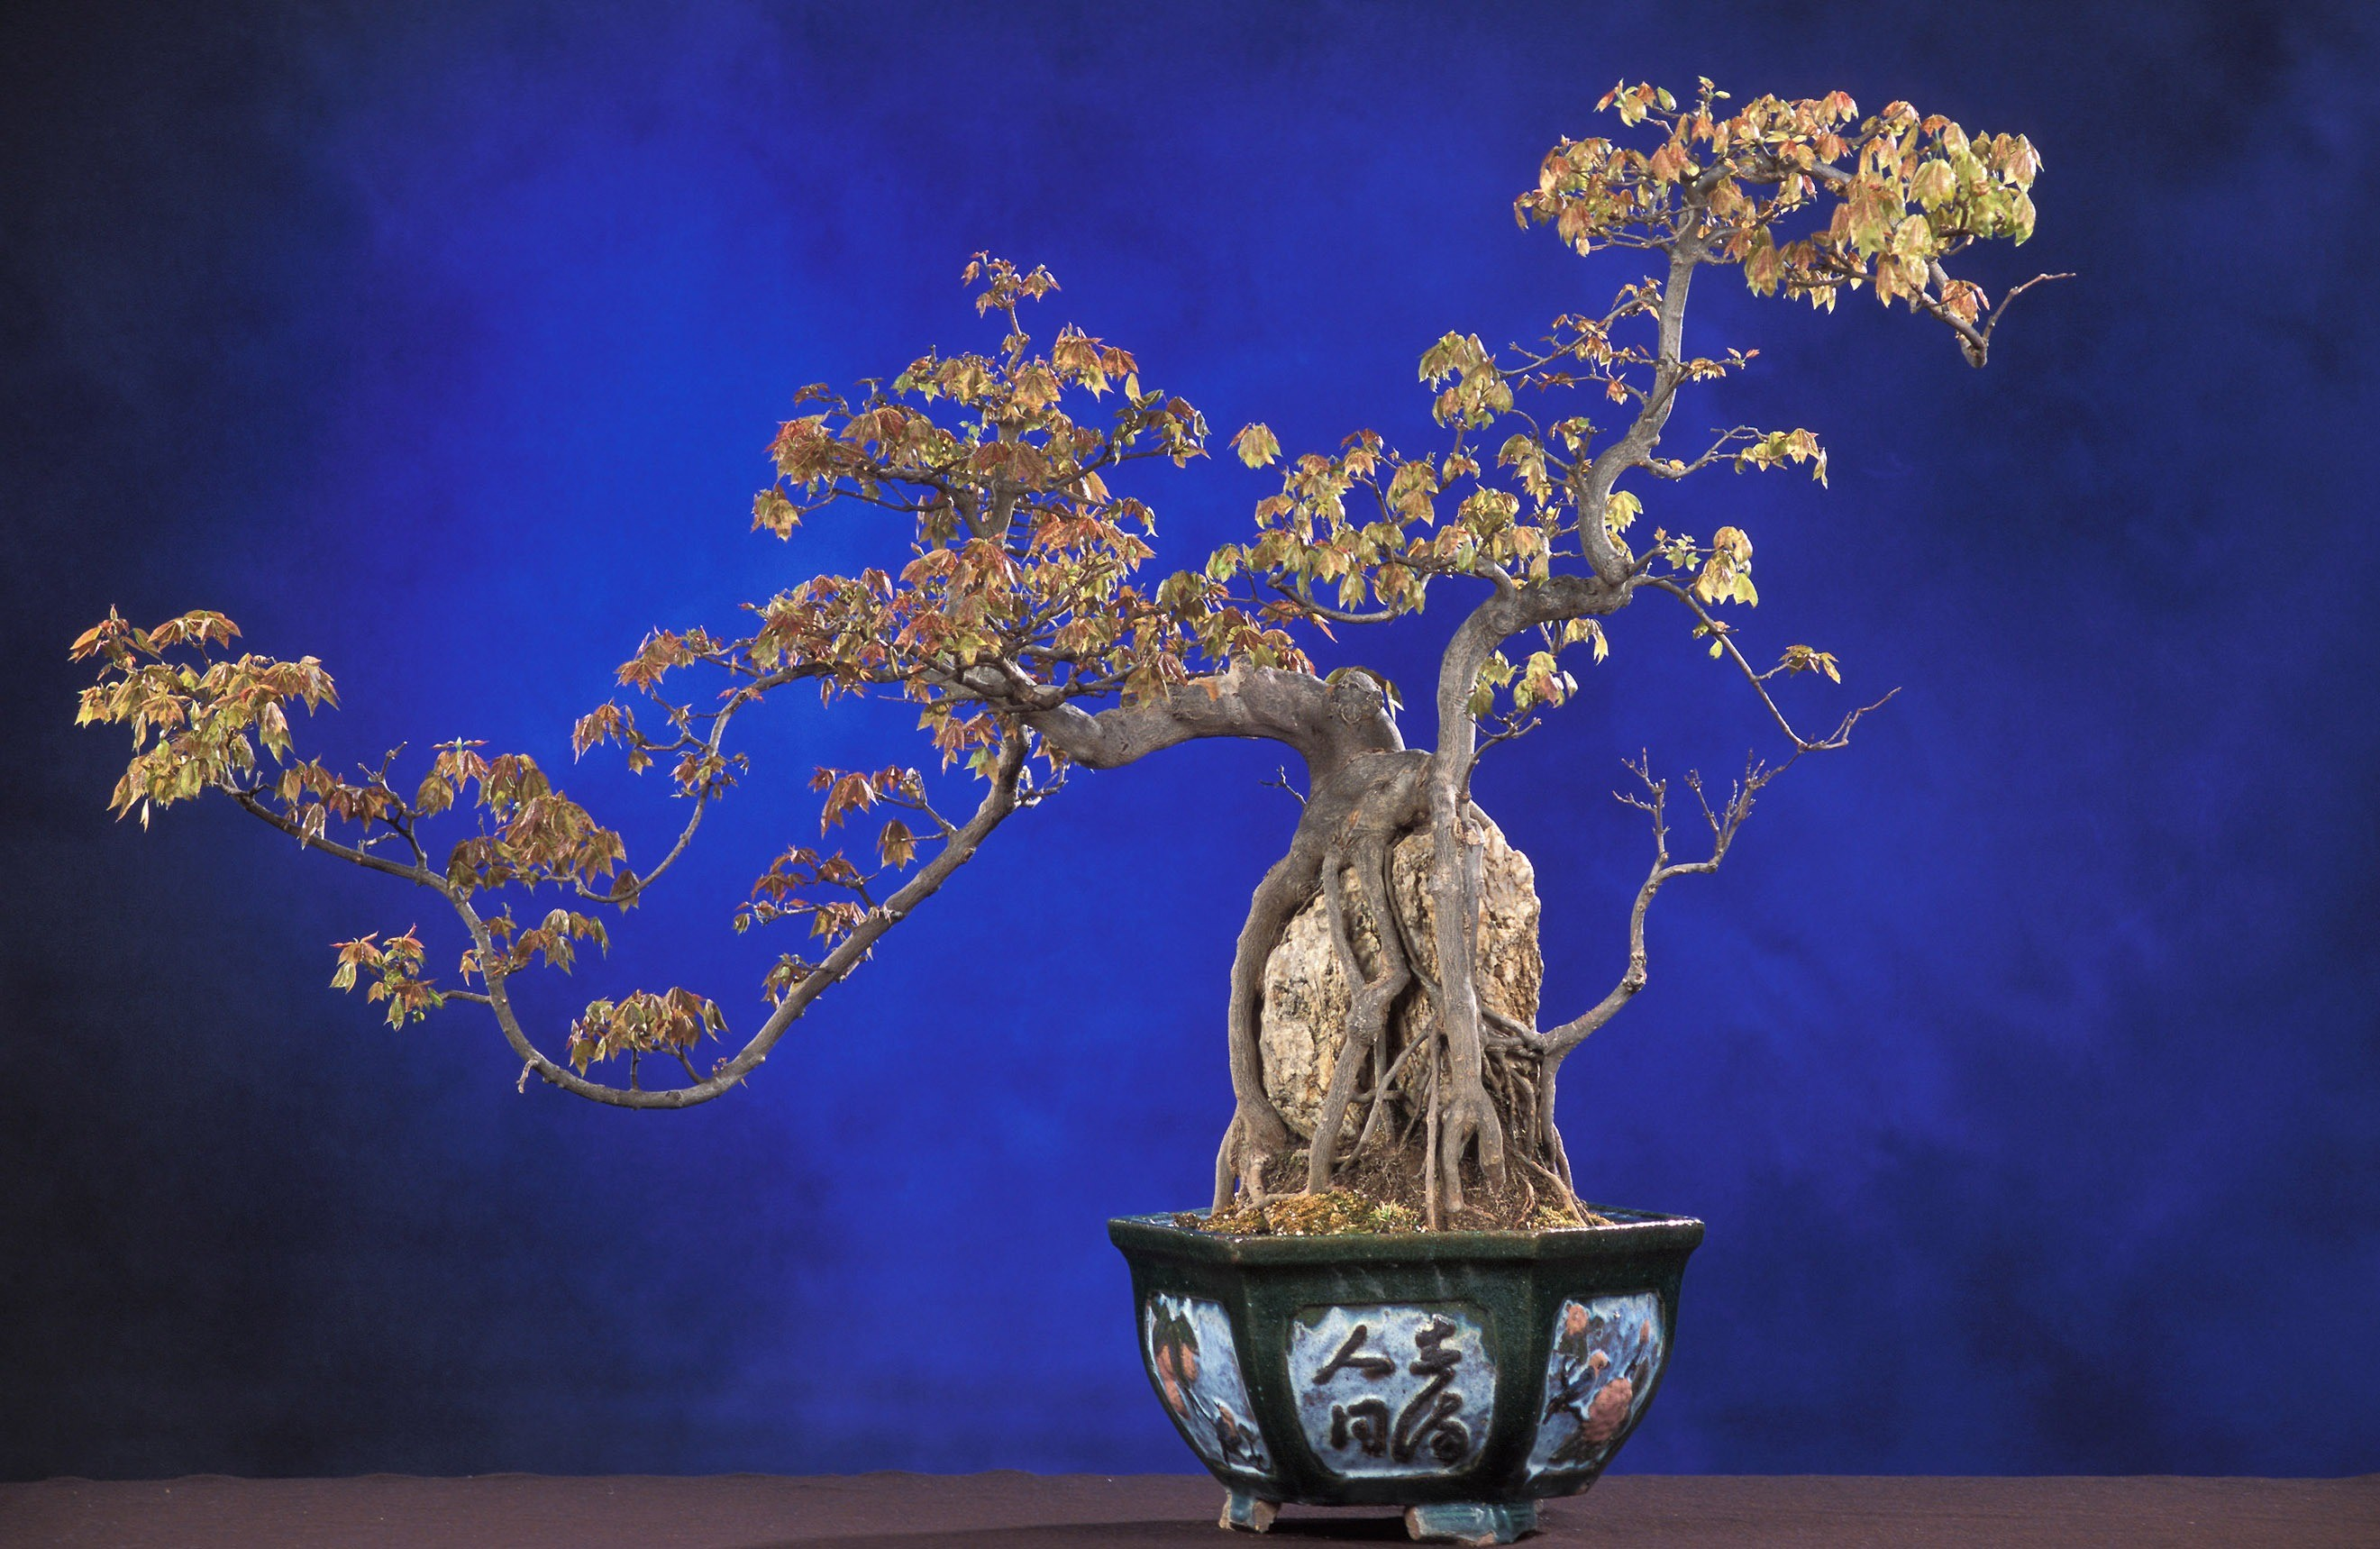 2641x1719 tree branch plant flower blue flora still life potted plant painting  houseplant art bonsai ornamental plant